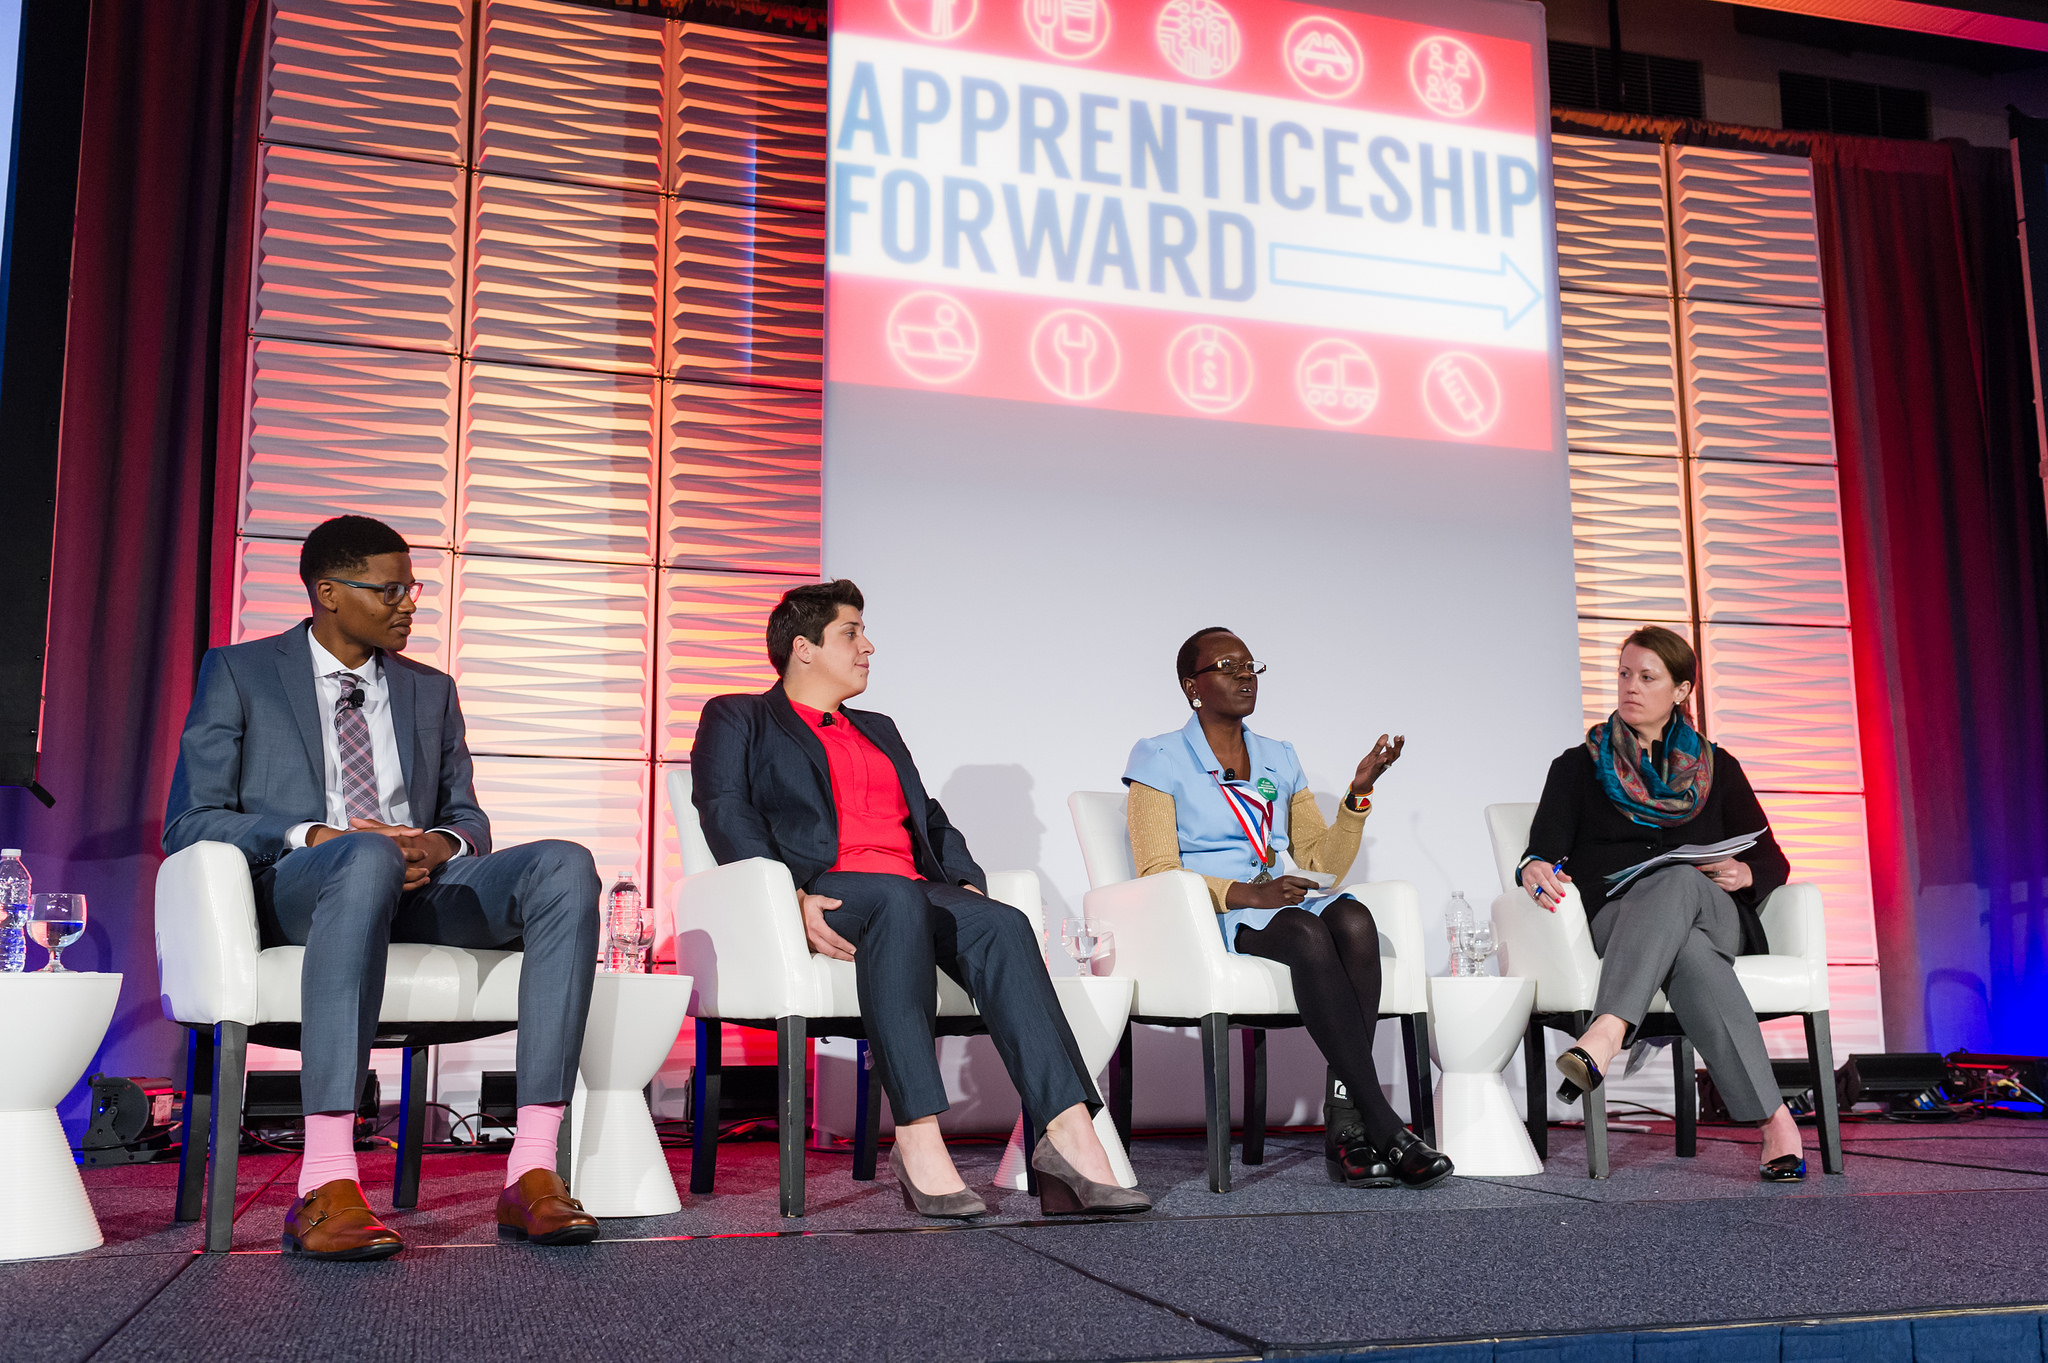 The apprentices panel at the Apprenticeship Forward national conference, May 4, 2017.